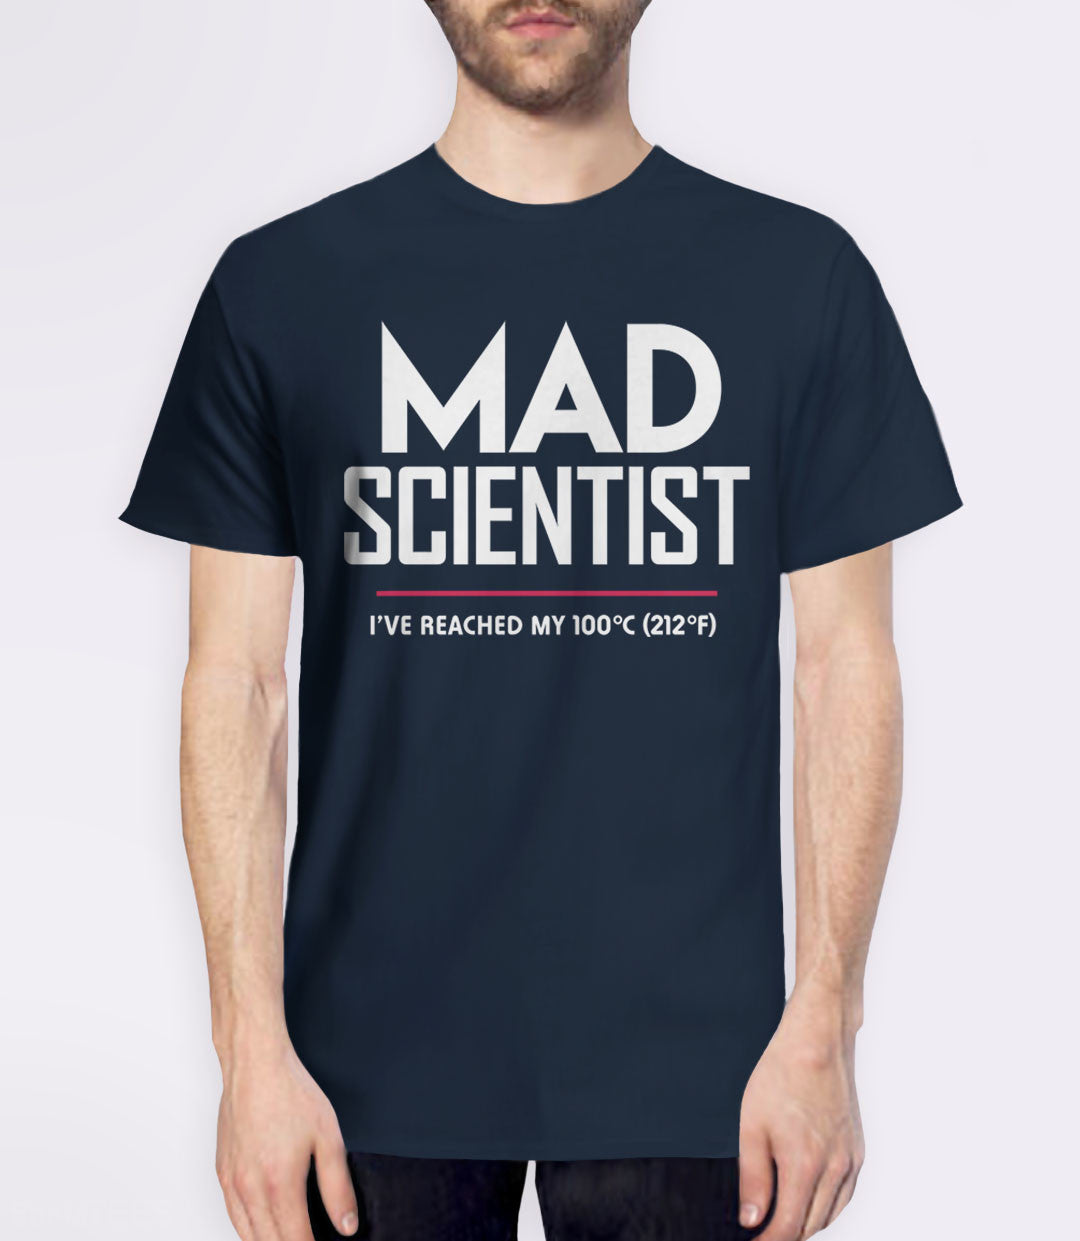 Mad Scientist science march protest t-shirt - mens navy